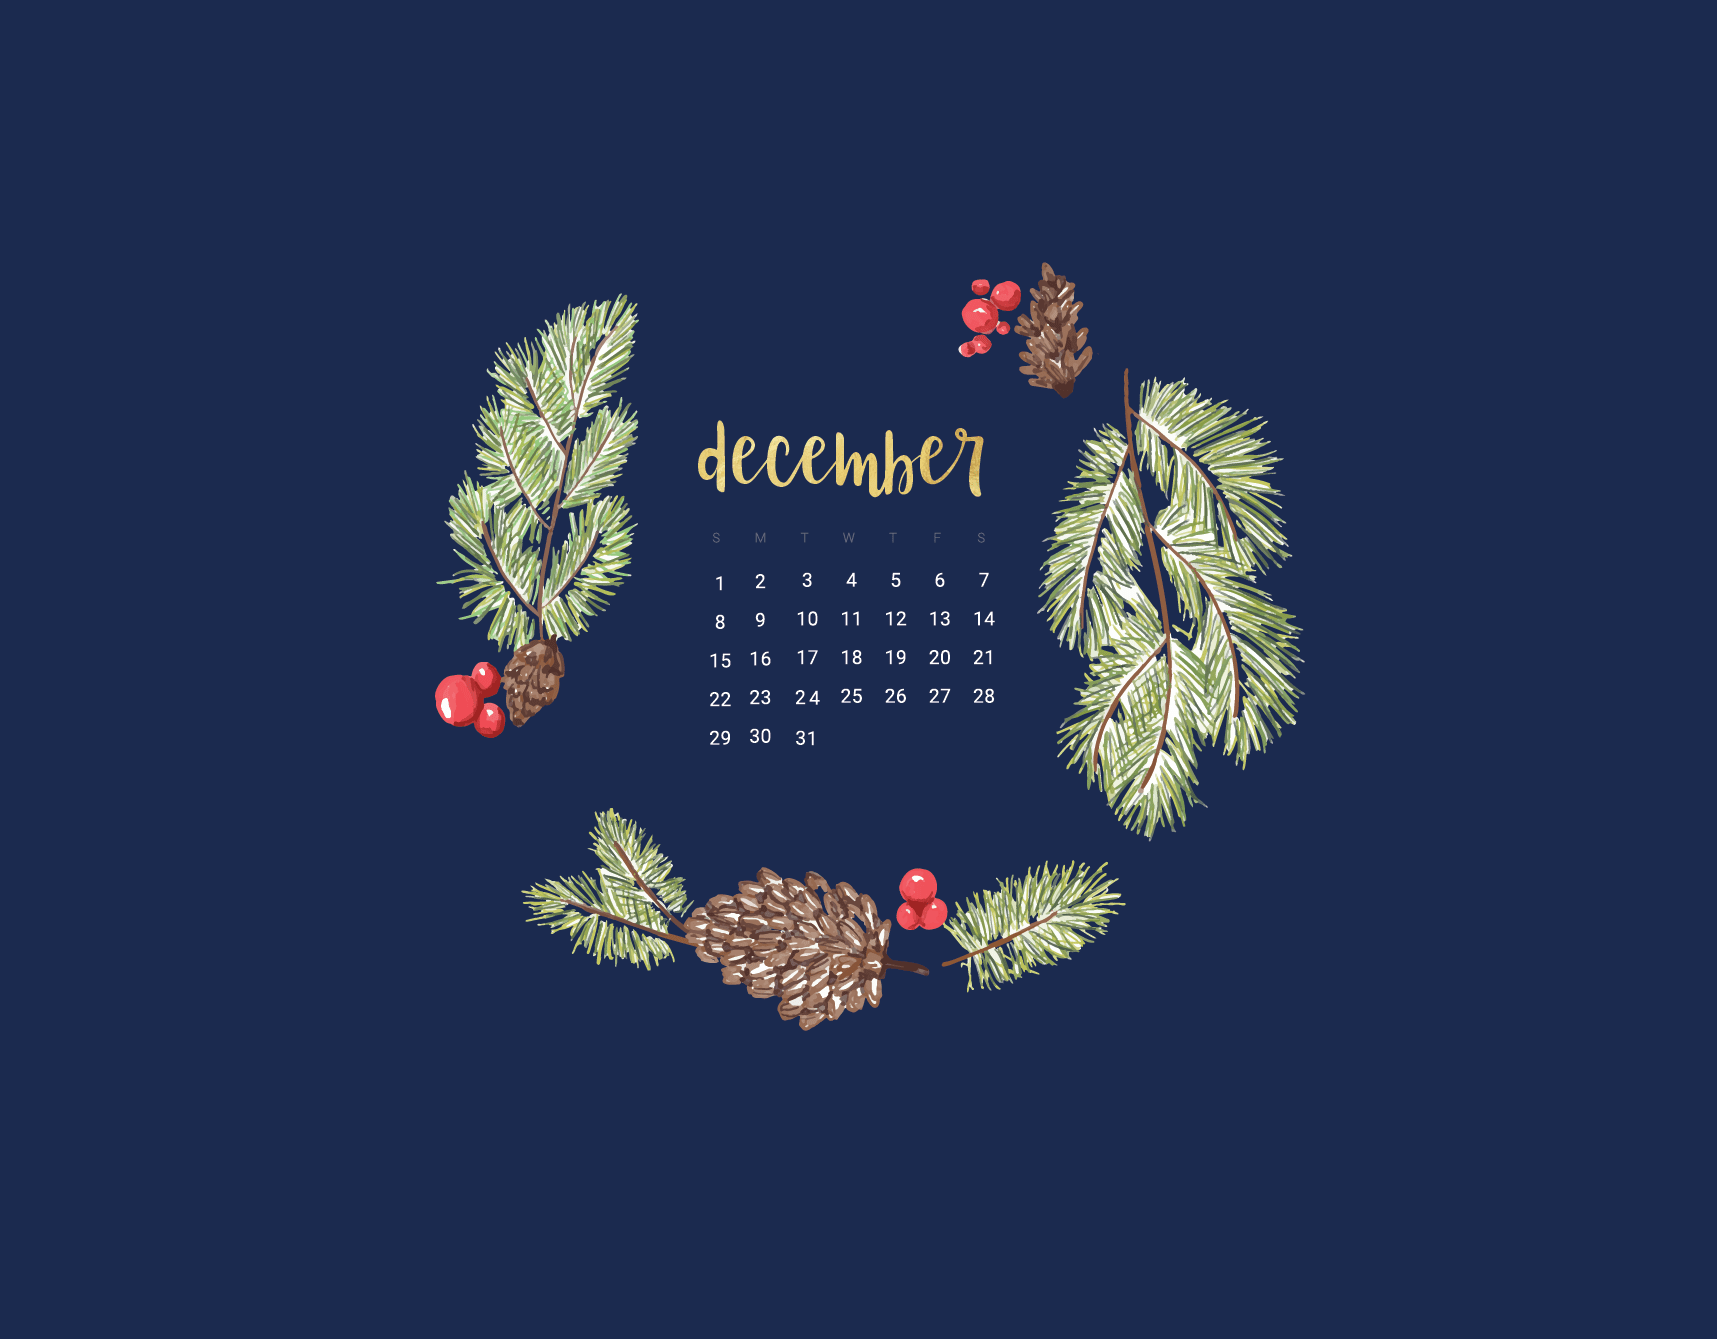 Floral December 2019 Wallpaper Calendar Wallpaper Desktop Wallpaper Calendar Christmas Desktop Wallpaper